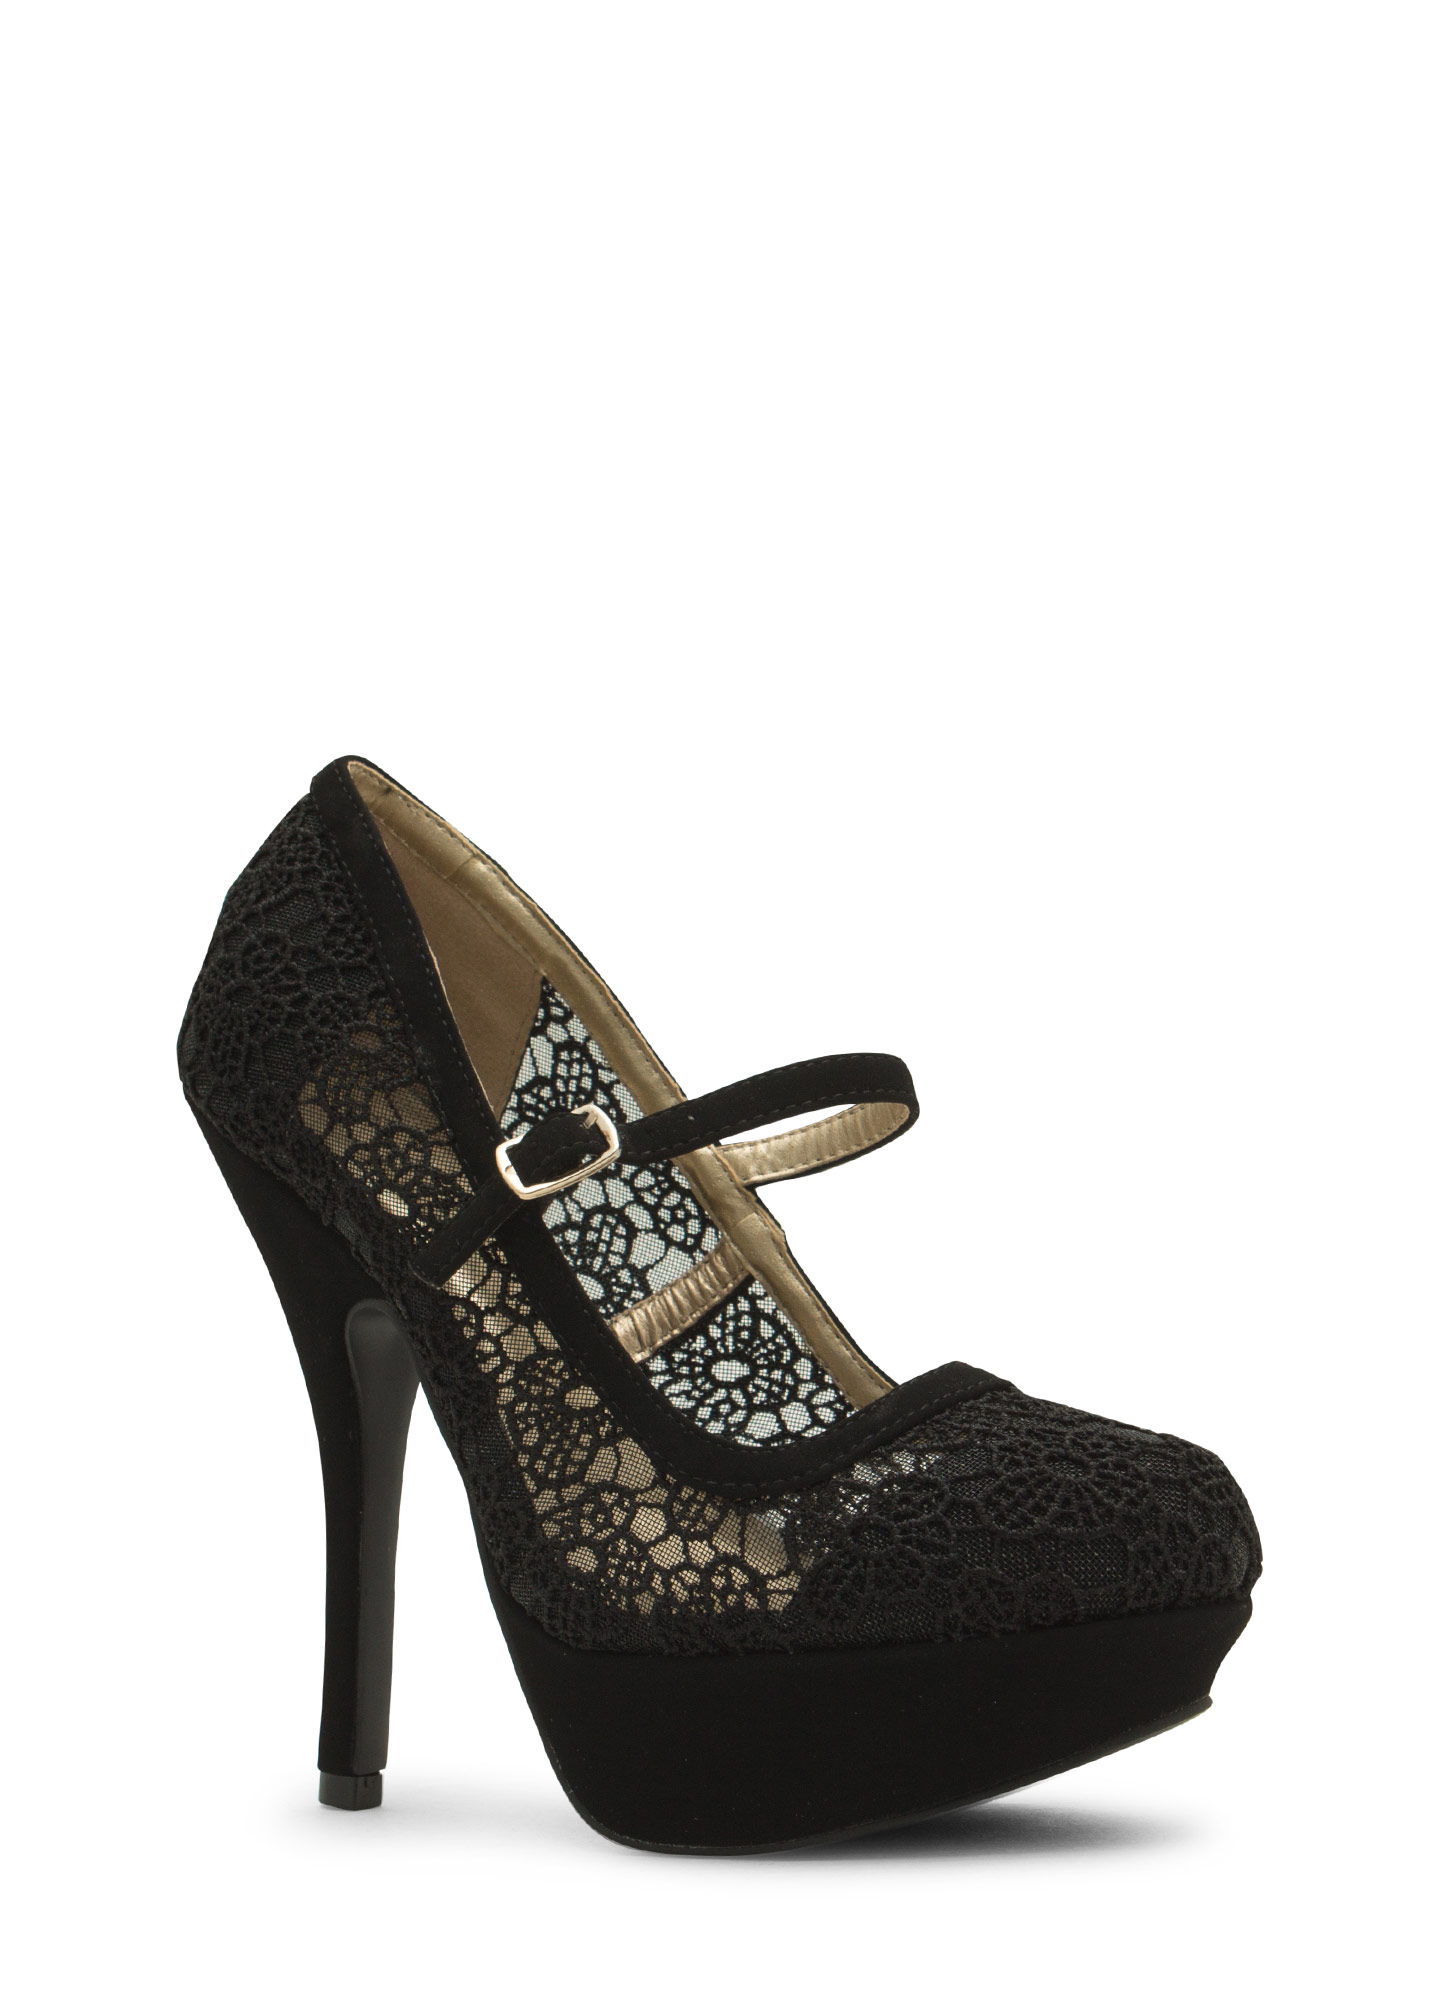 Daisy Crochet Mary Jane Heels BLACK